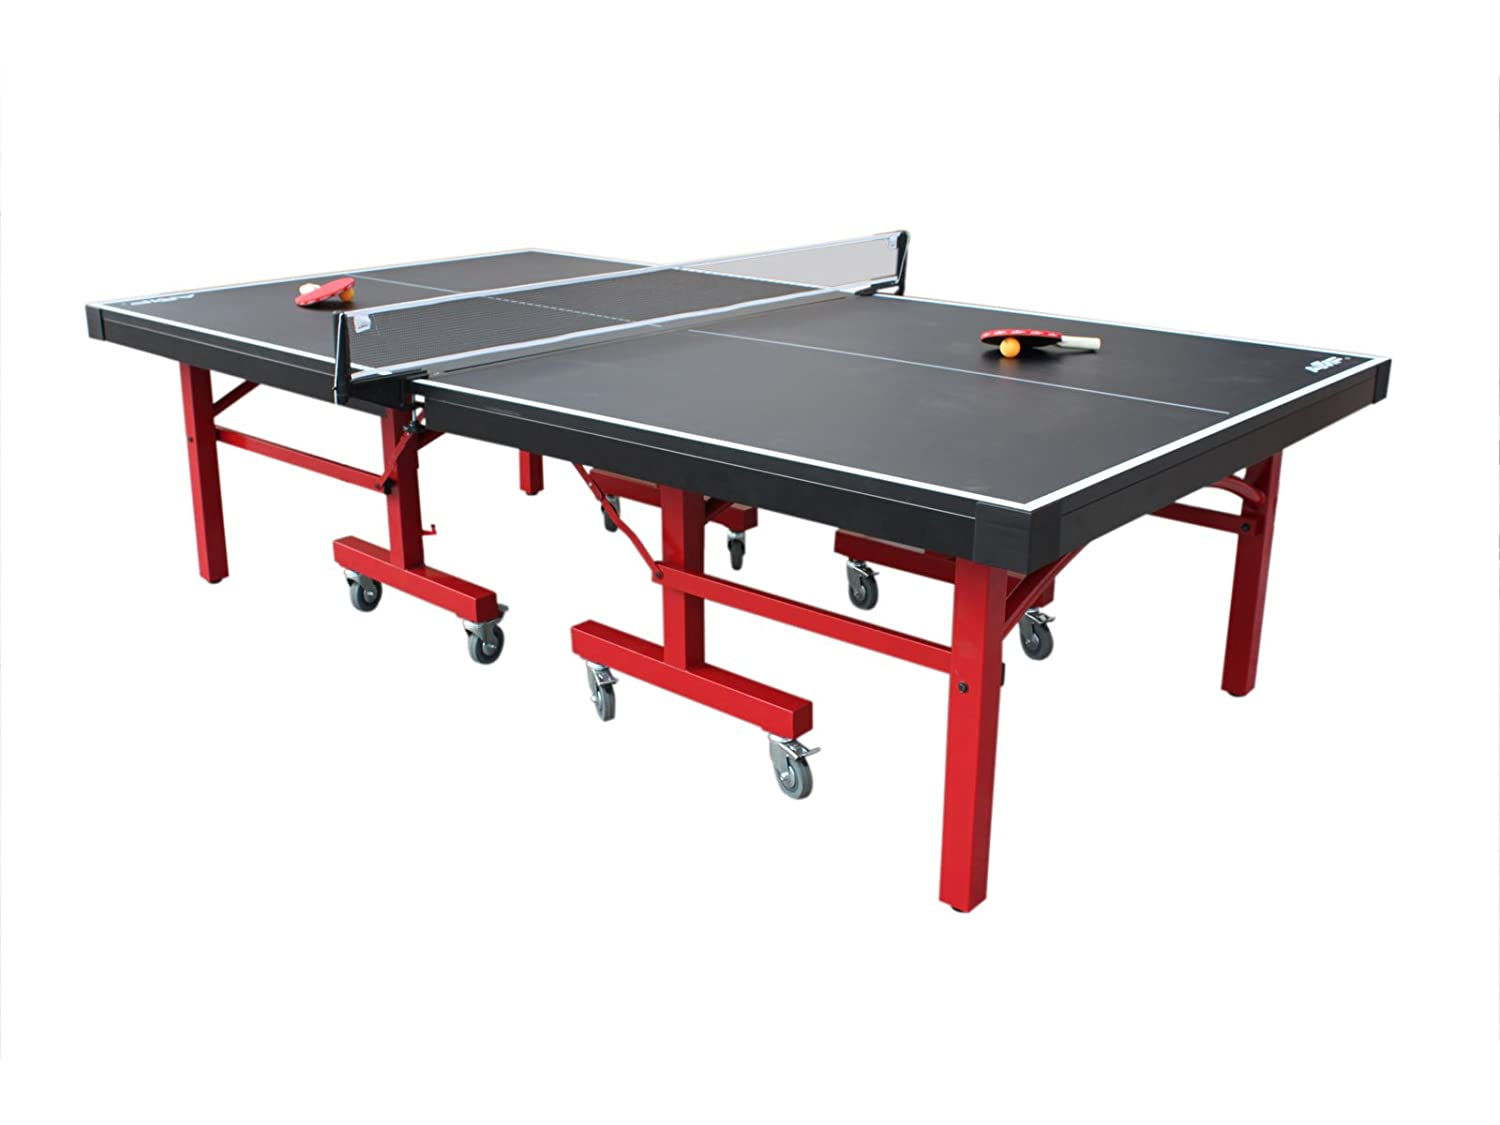 Amazon.com : AMF Fury Table Tennis Table : Sports & Outdoors